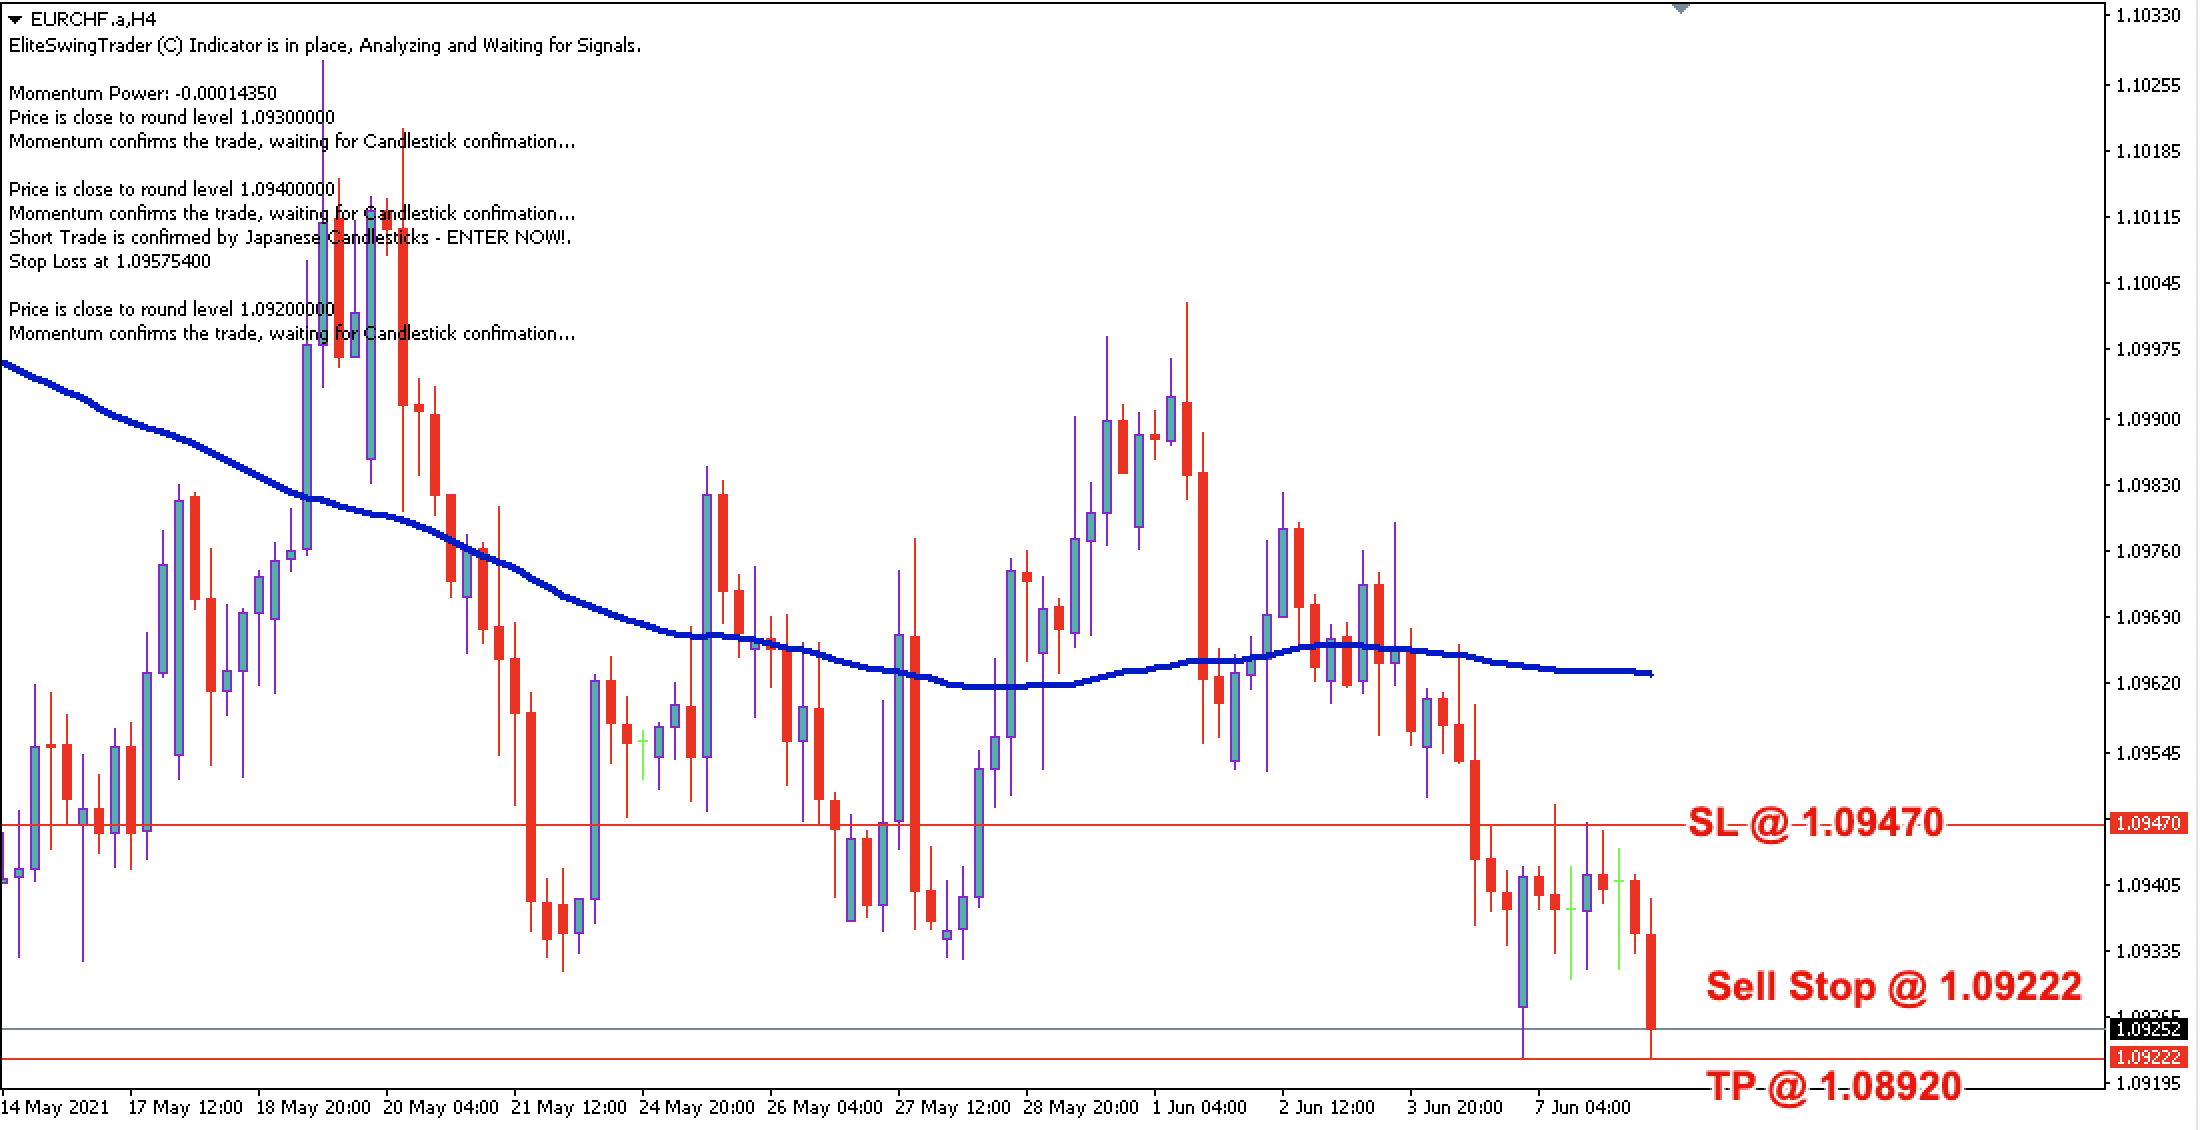 EUR/CHF Daily Price Forecast – 8th June 2021